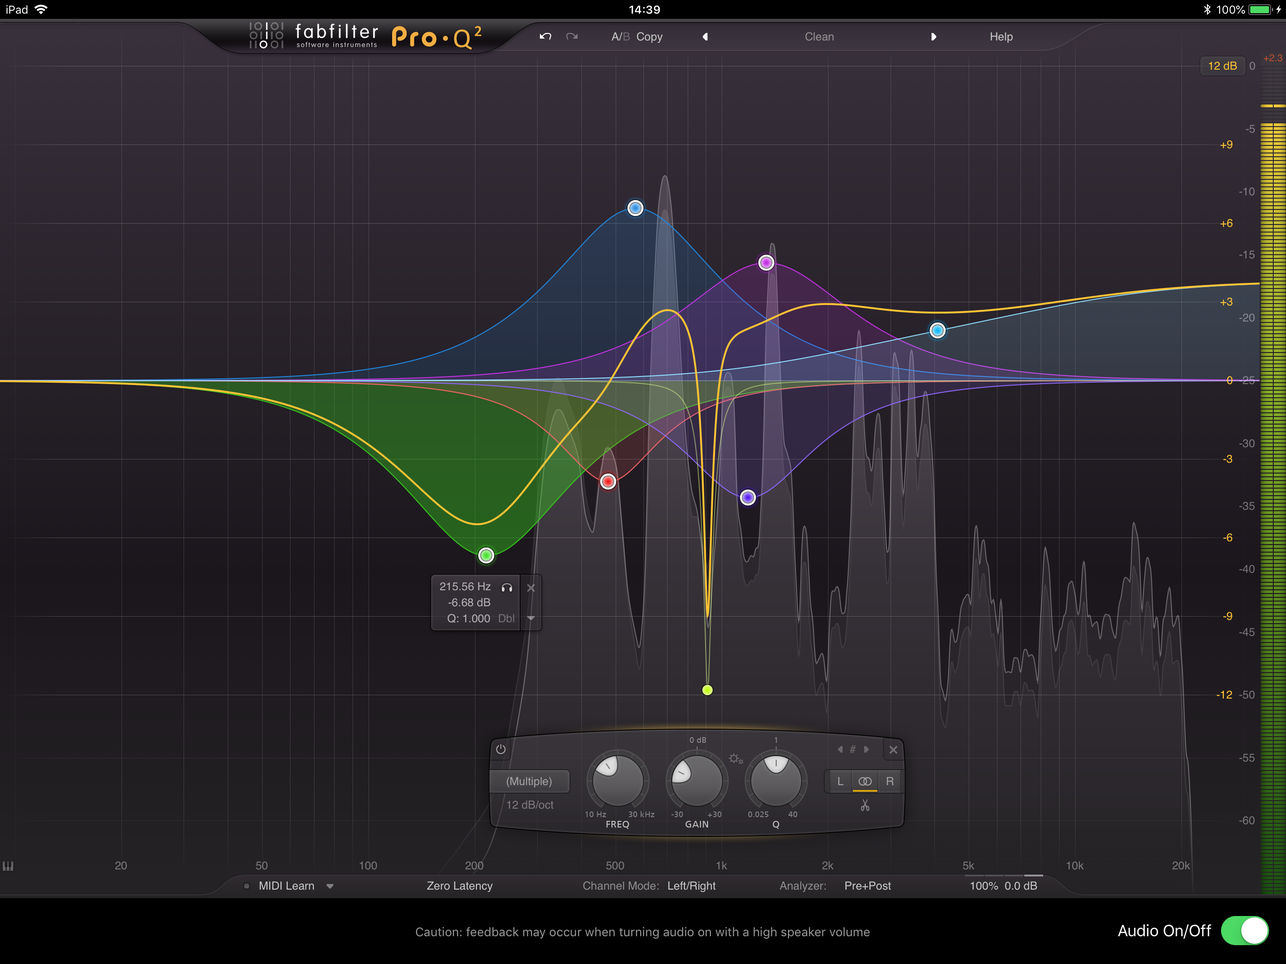 FabFilter Released Pro-Q2 High-Quality Equalizer For iOS AUv3